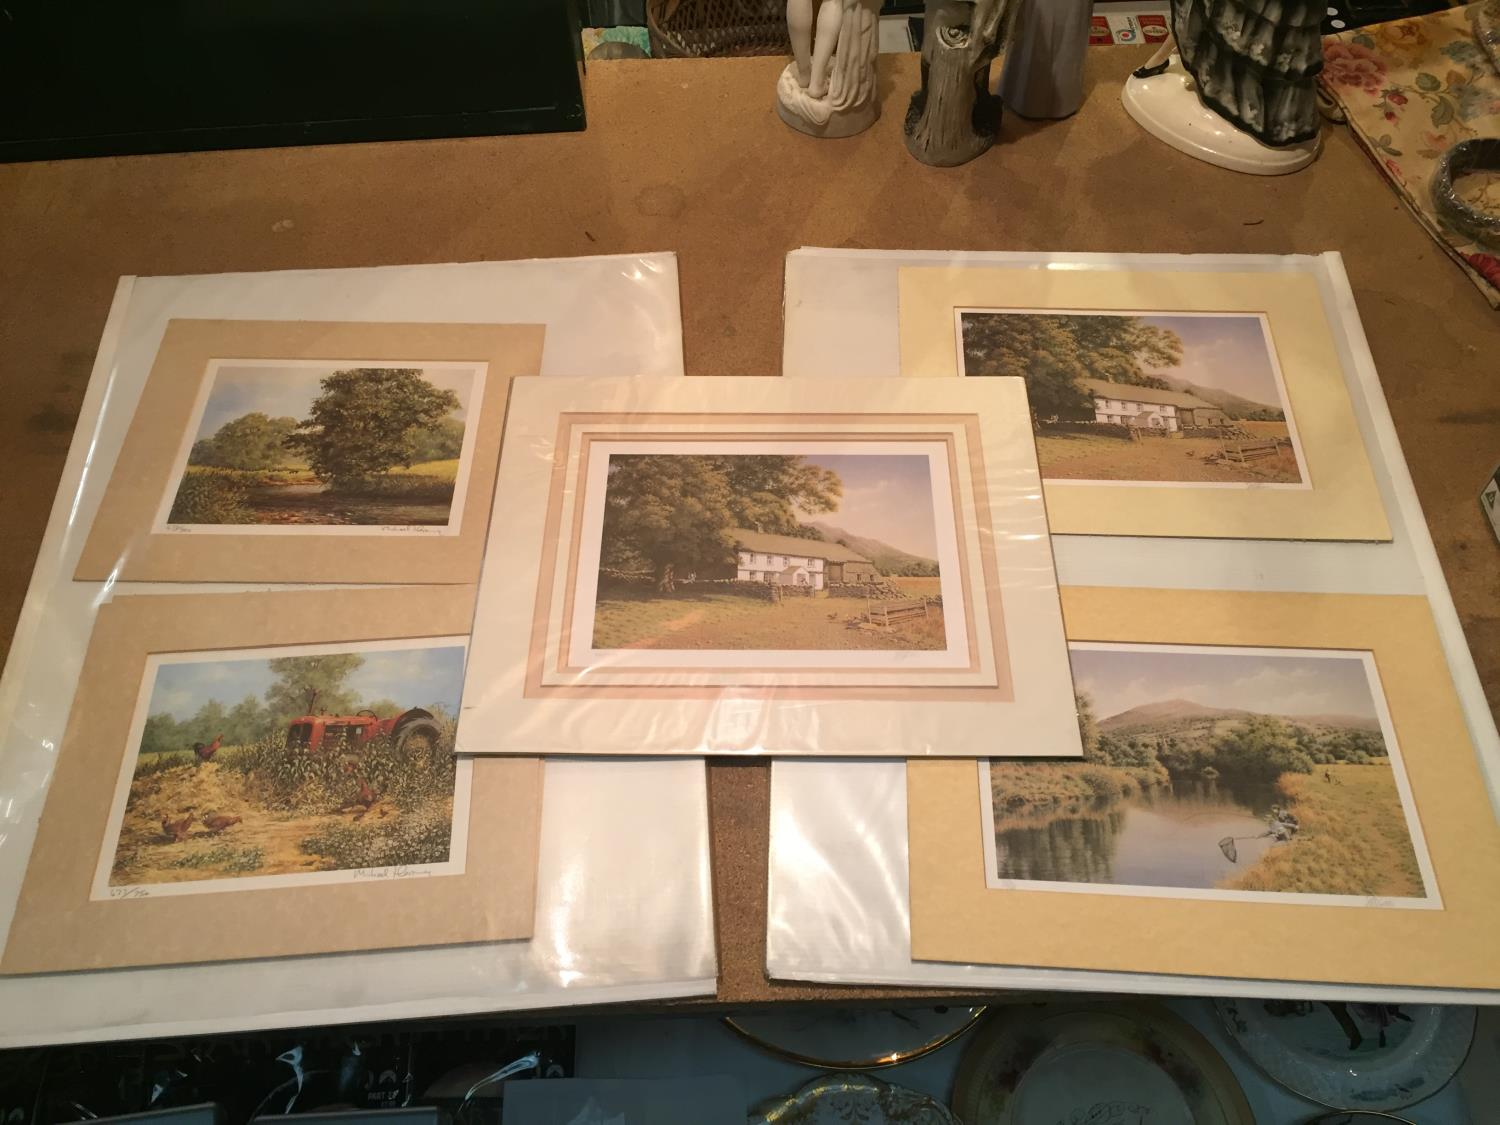 THREE MOUNTED SIGNED PRINTS OF FARM SCENES IN A HARDBACK PROTECTIVE FOLDER - Image 2 of 12